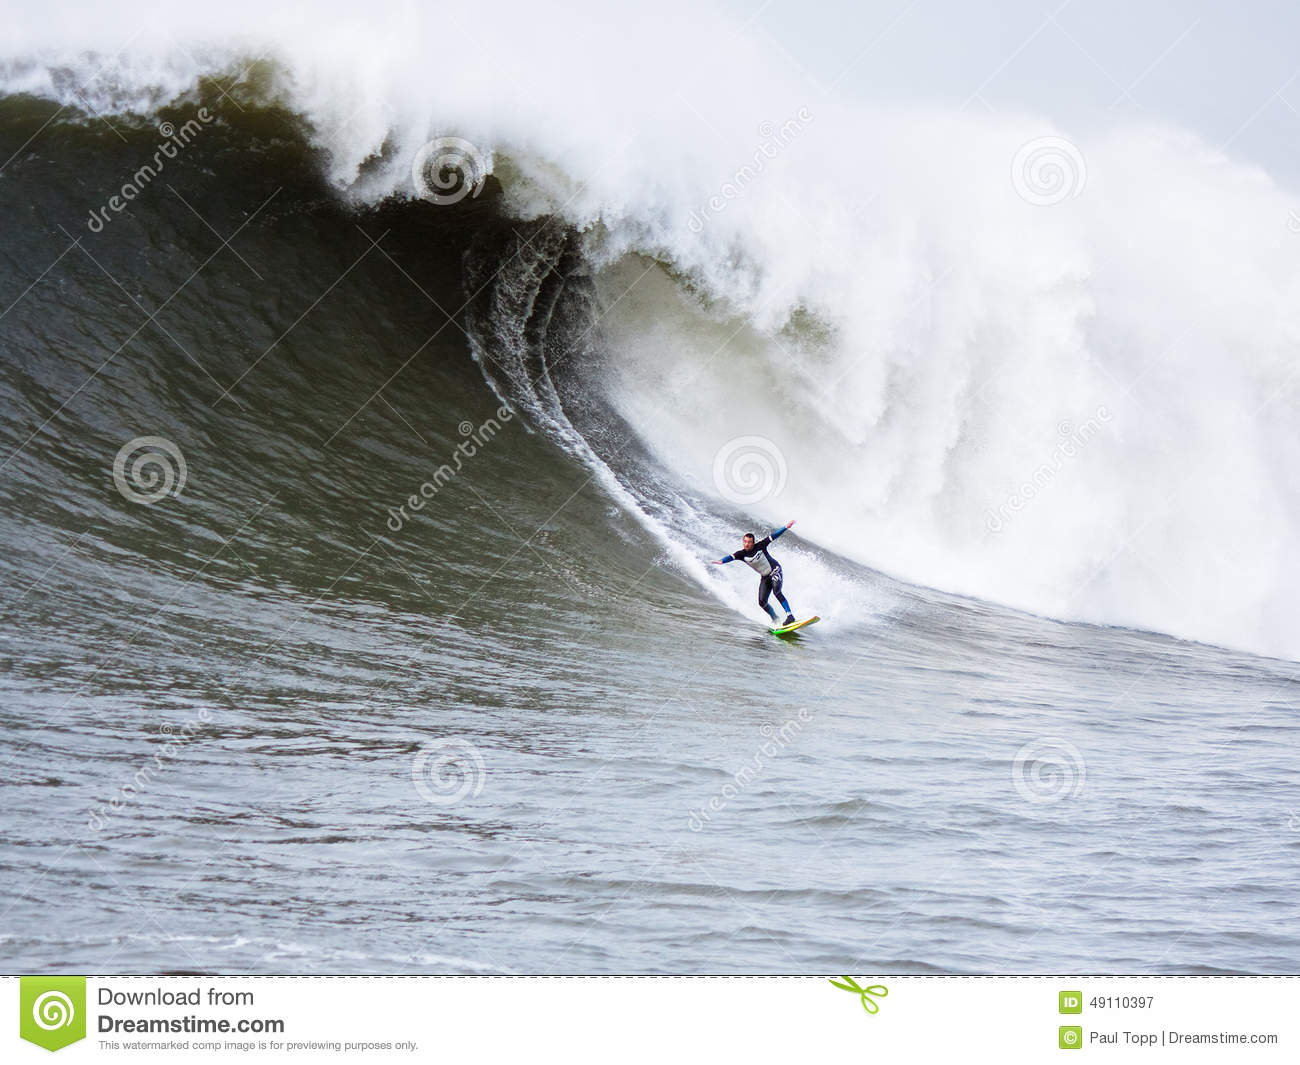 Big Wave Surfer Anthony Tashnick Surfing Mavericks